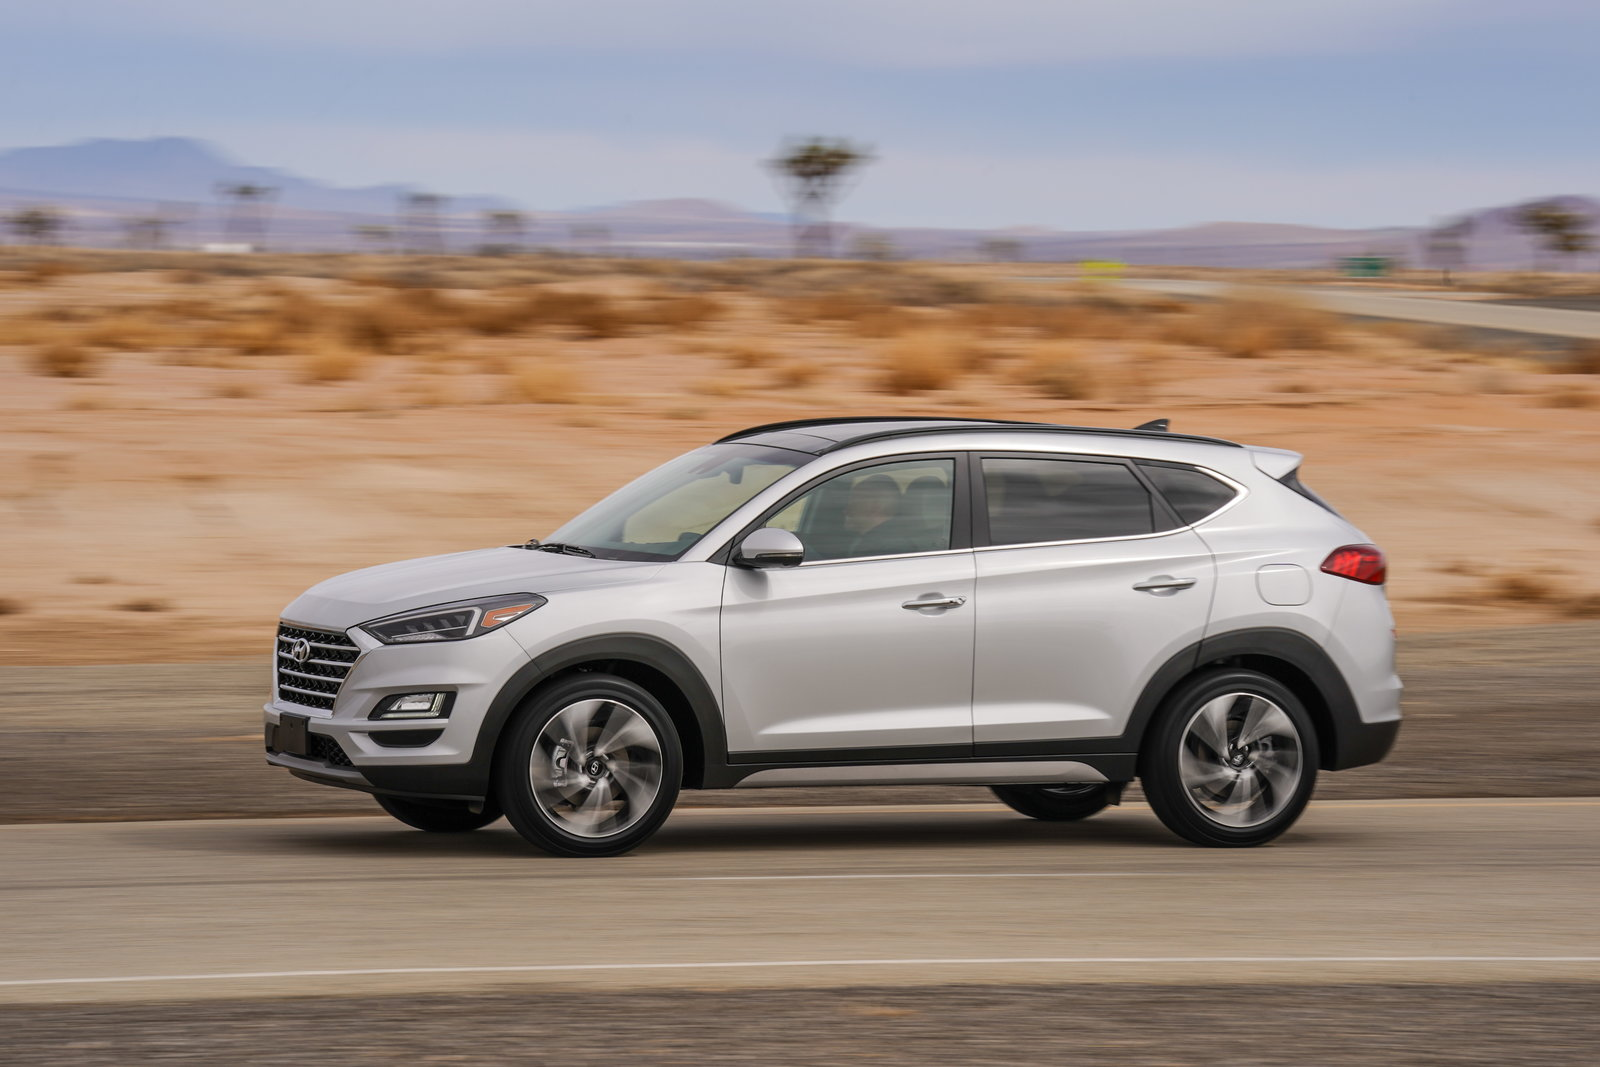 2019 Hyundai Tucson: Preview, Pricing, Release Date